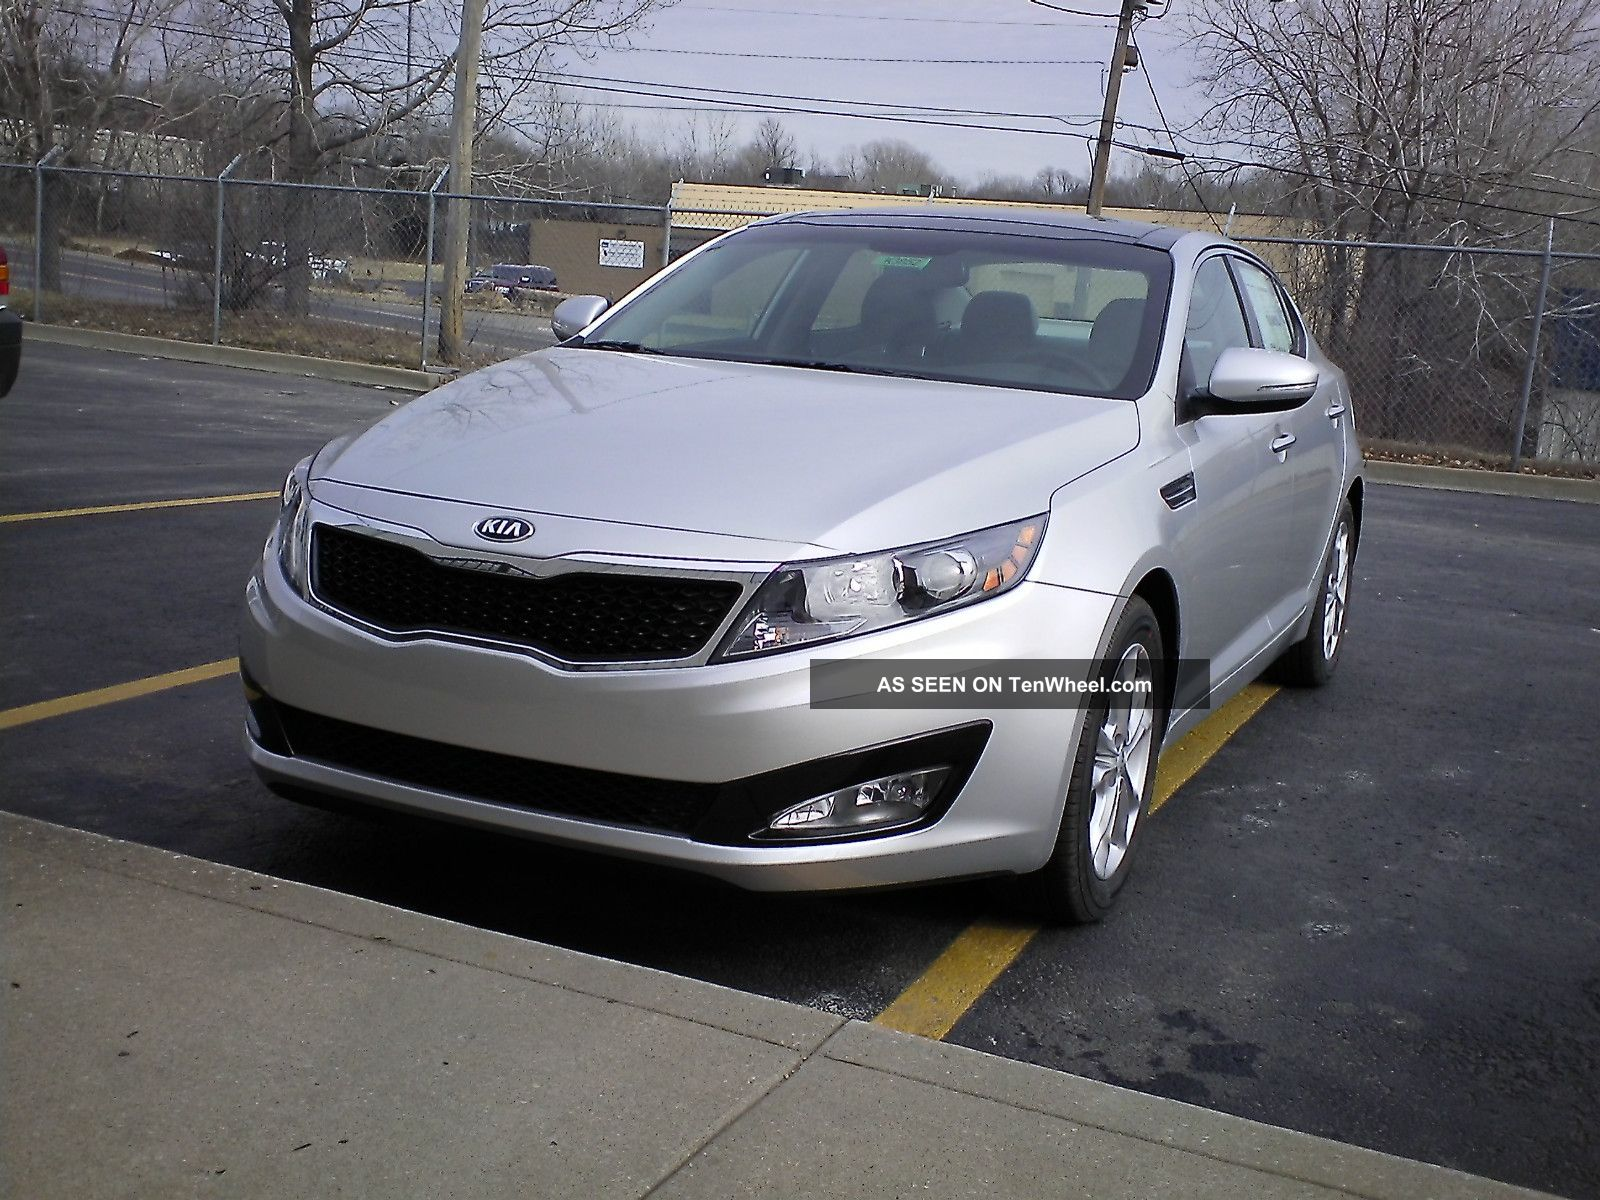 2013 Kia Optima Ex Gdi Loaded Glass Roof All Options Available Optima photo